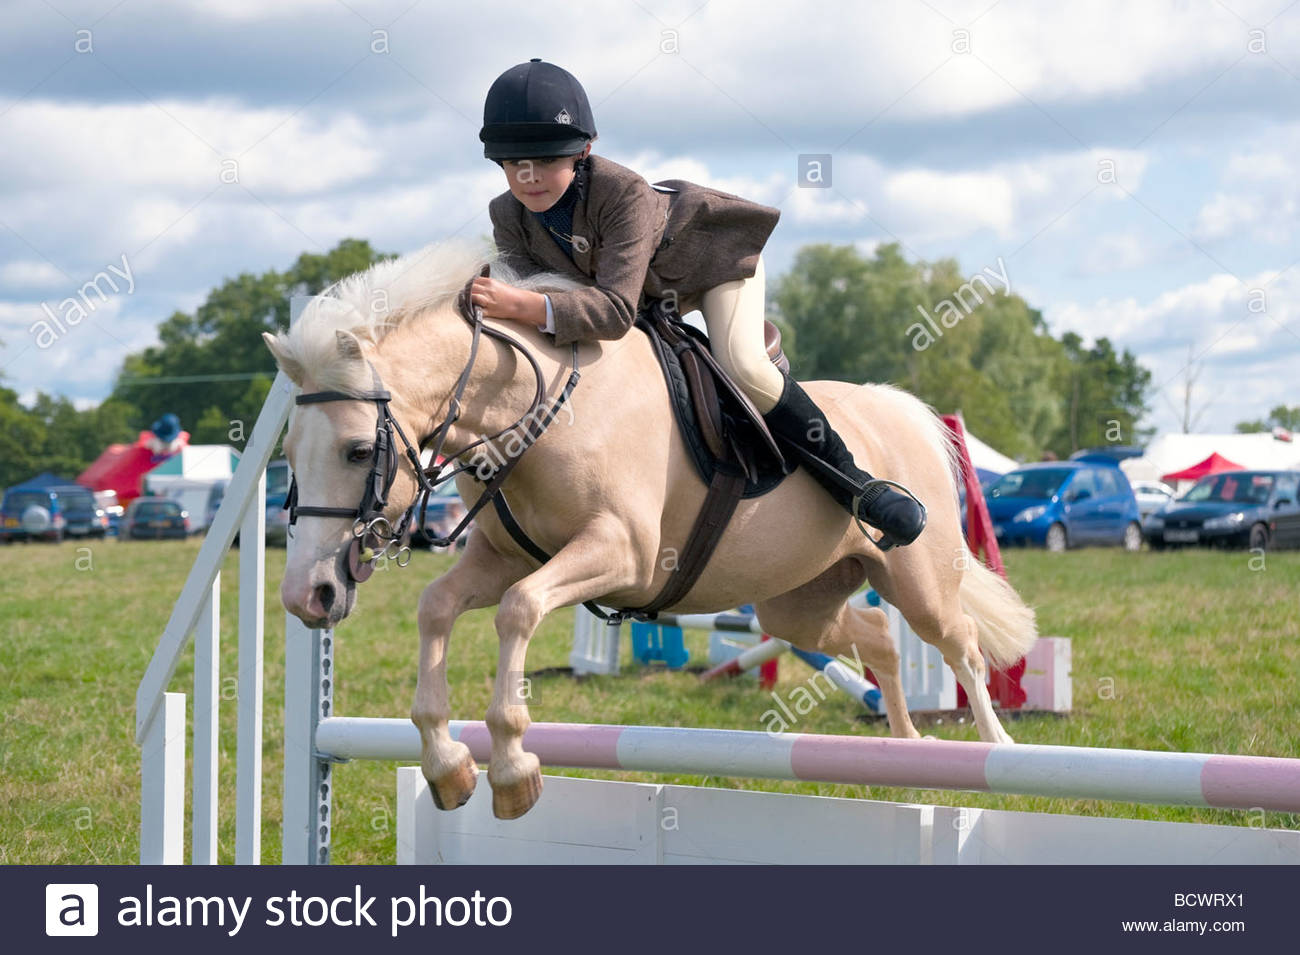 Beautiful palomino pony frozen in mid-air as it leaps over a show jumping fence at Pembridge Show. Young girl riding. - Stock Image